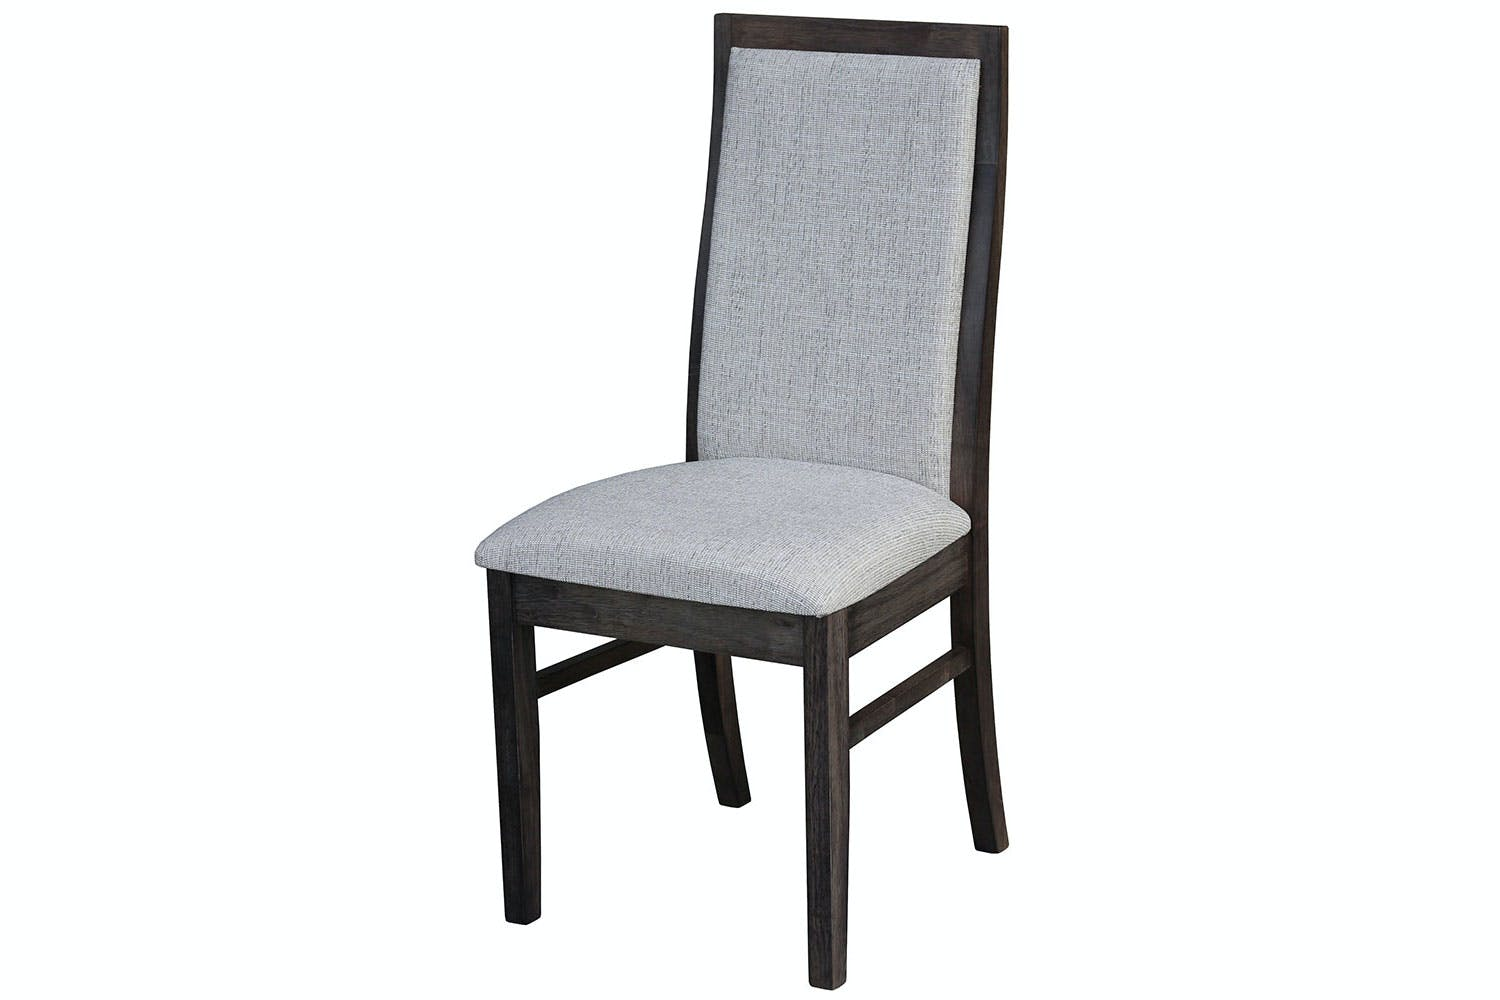 Image of Metro Padded Back Dining Chair by Coastwood Furniture